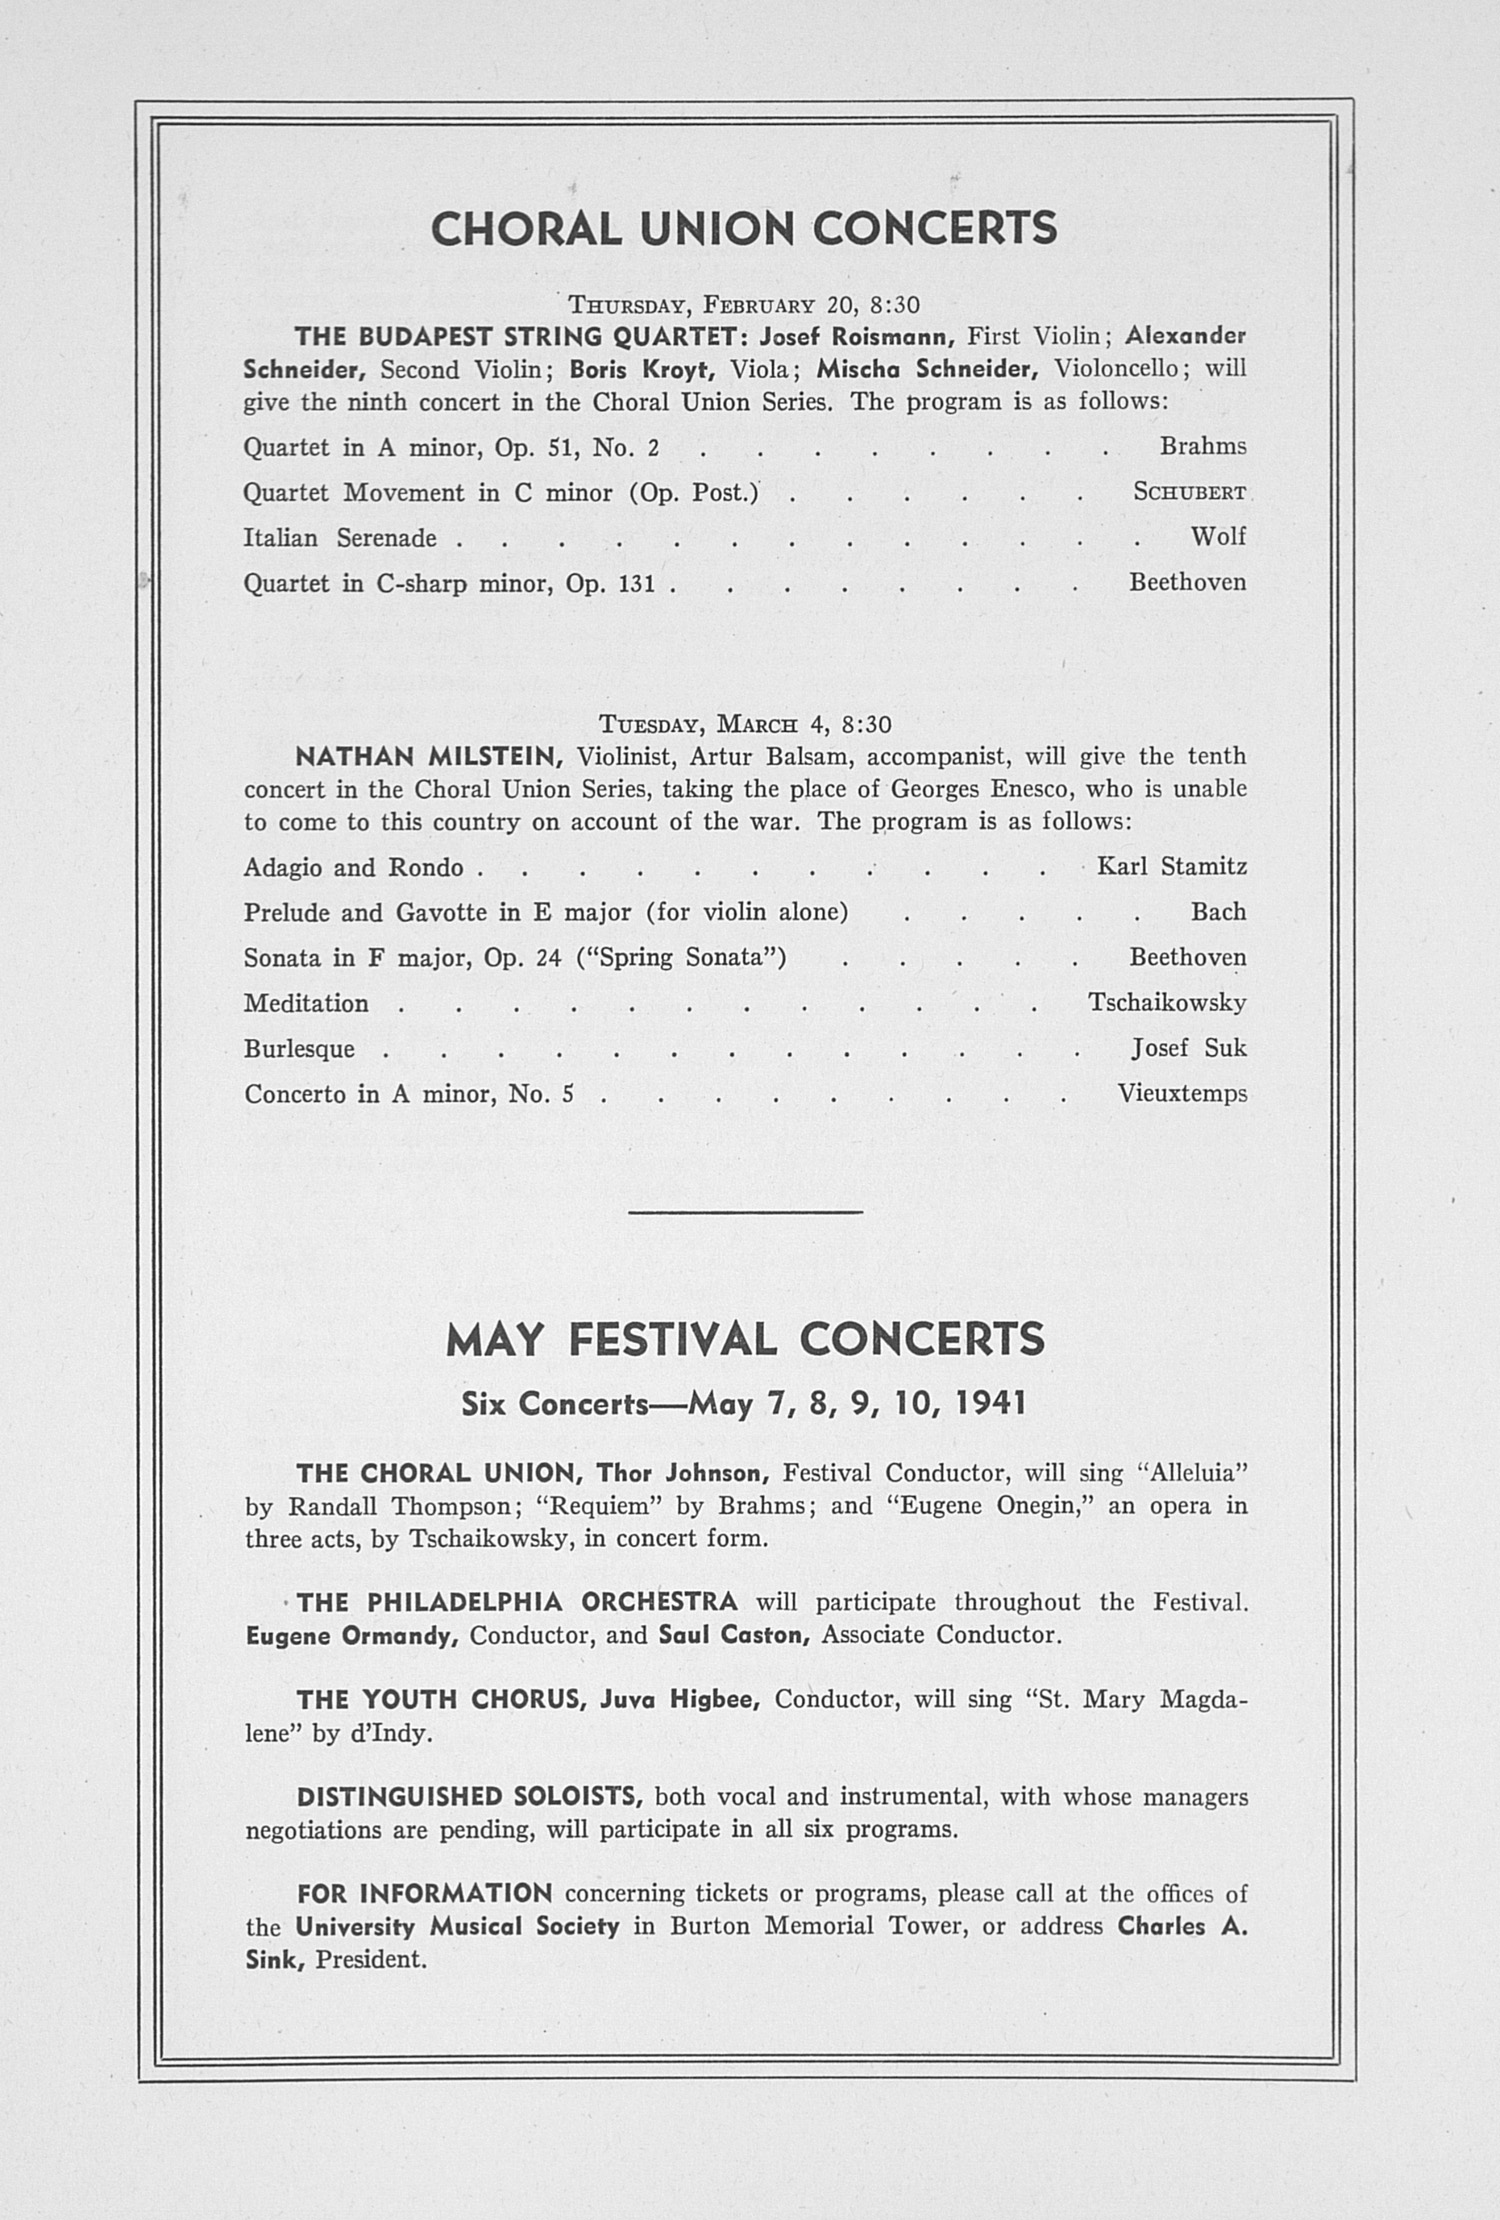 UMS Concert Program, January 28, 1941: Sixty-second Annual Choral Union Concert Series -- Minneapolis Symphony Orchestra image